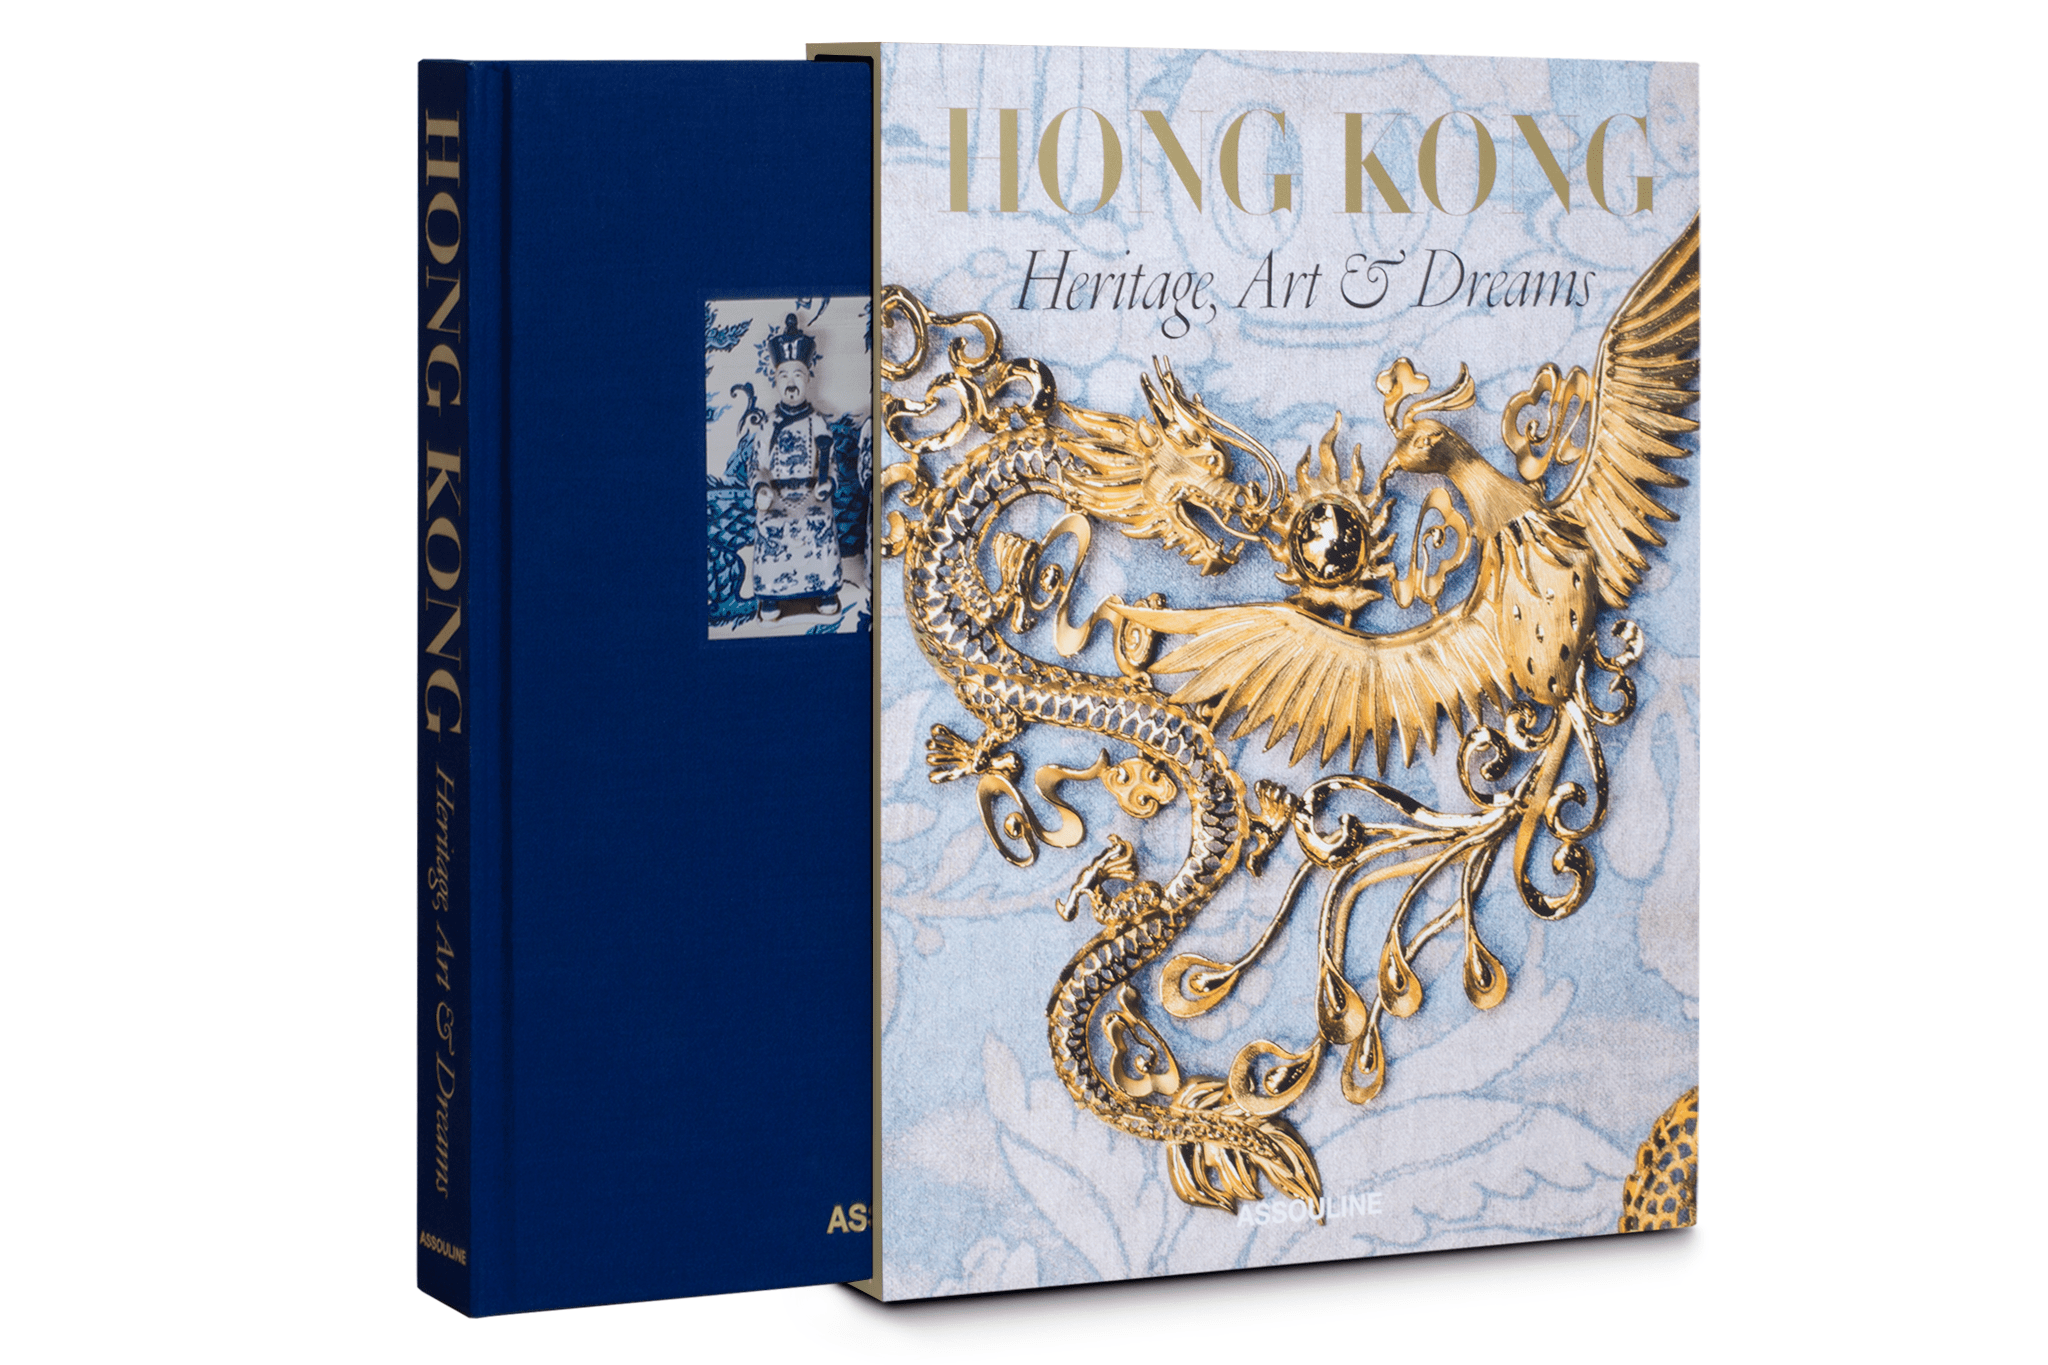 Hong Kong: Heritage, Art and Dreams